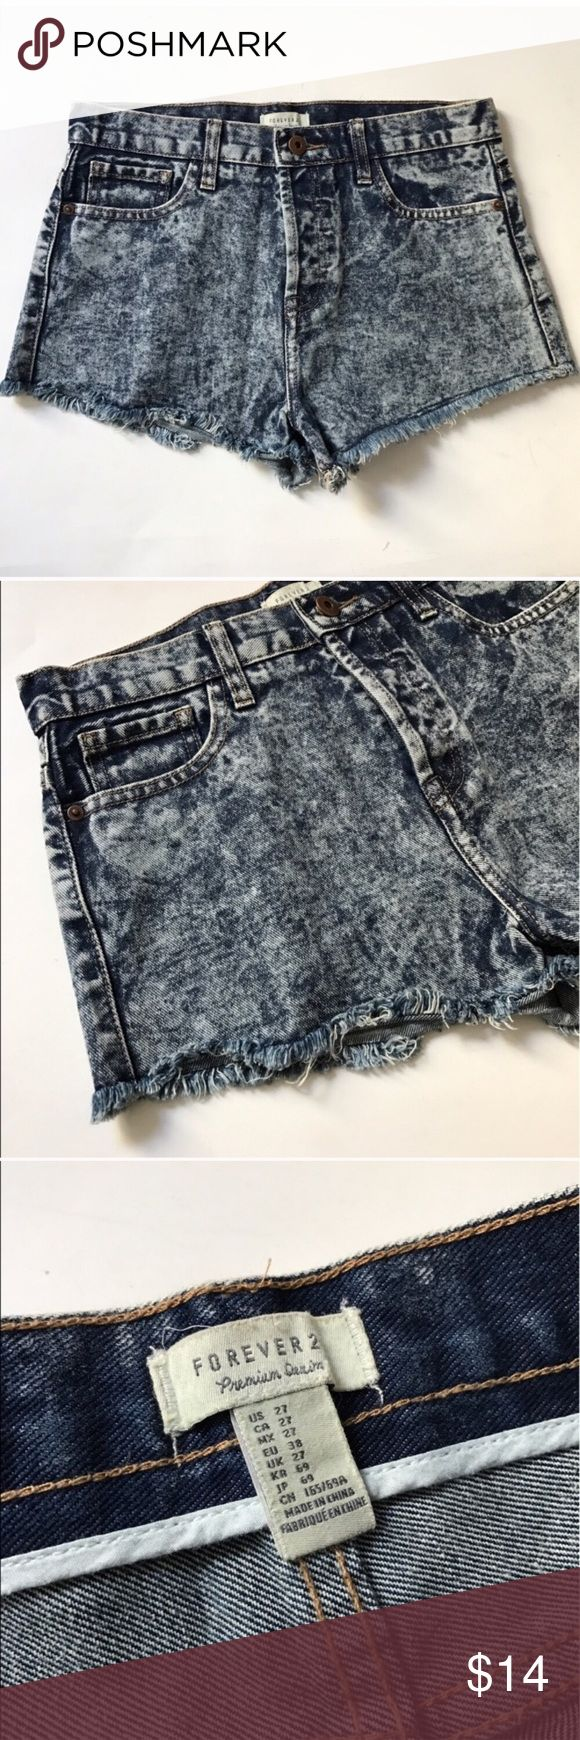 "Forever 21 acid wash shorts Forever 21 distressed acid wash shorts. Size 27. Inseam measures 2"". Rise measures 11"". Waistband measures 29"". Five pockets. Zipper and four button closure (three hidden buttons). Very good used condition! 🚫NO TRADES🚫 💲Reasonable offers accepted💲 💰Ask about bundle discounts💰 Forever 21 Shorts Jean Shorts"